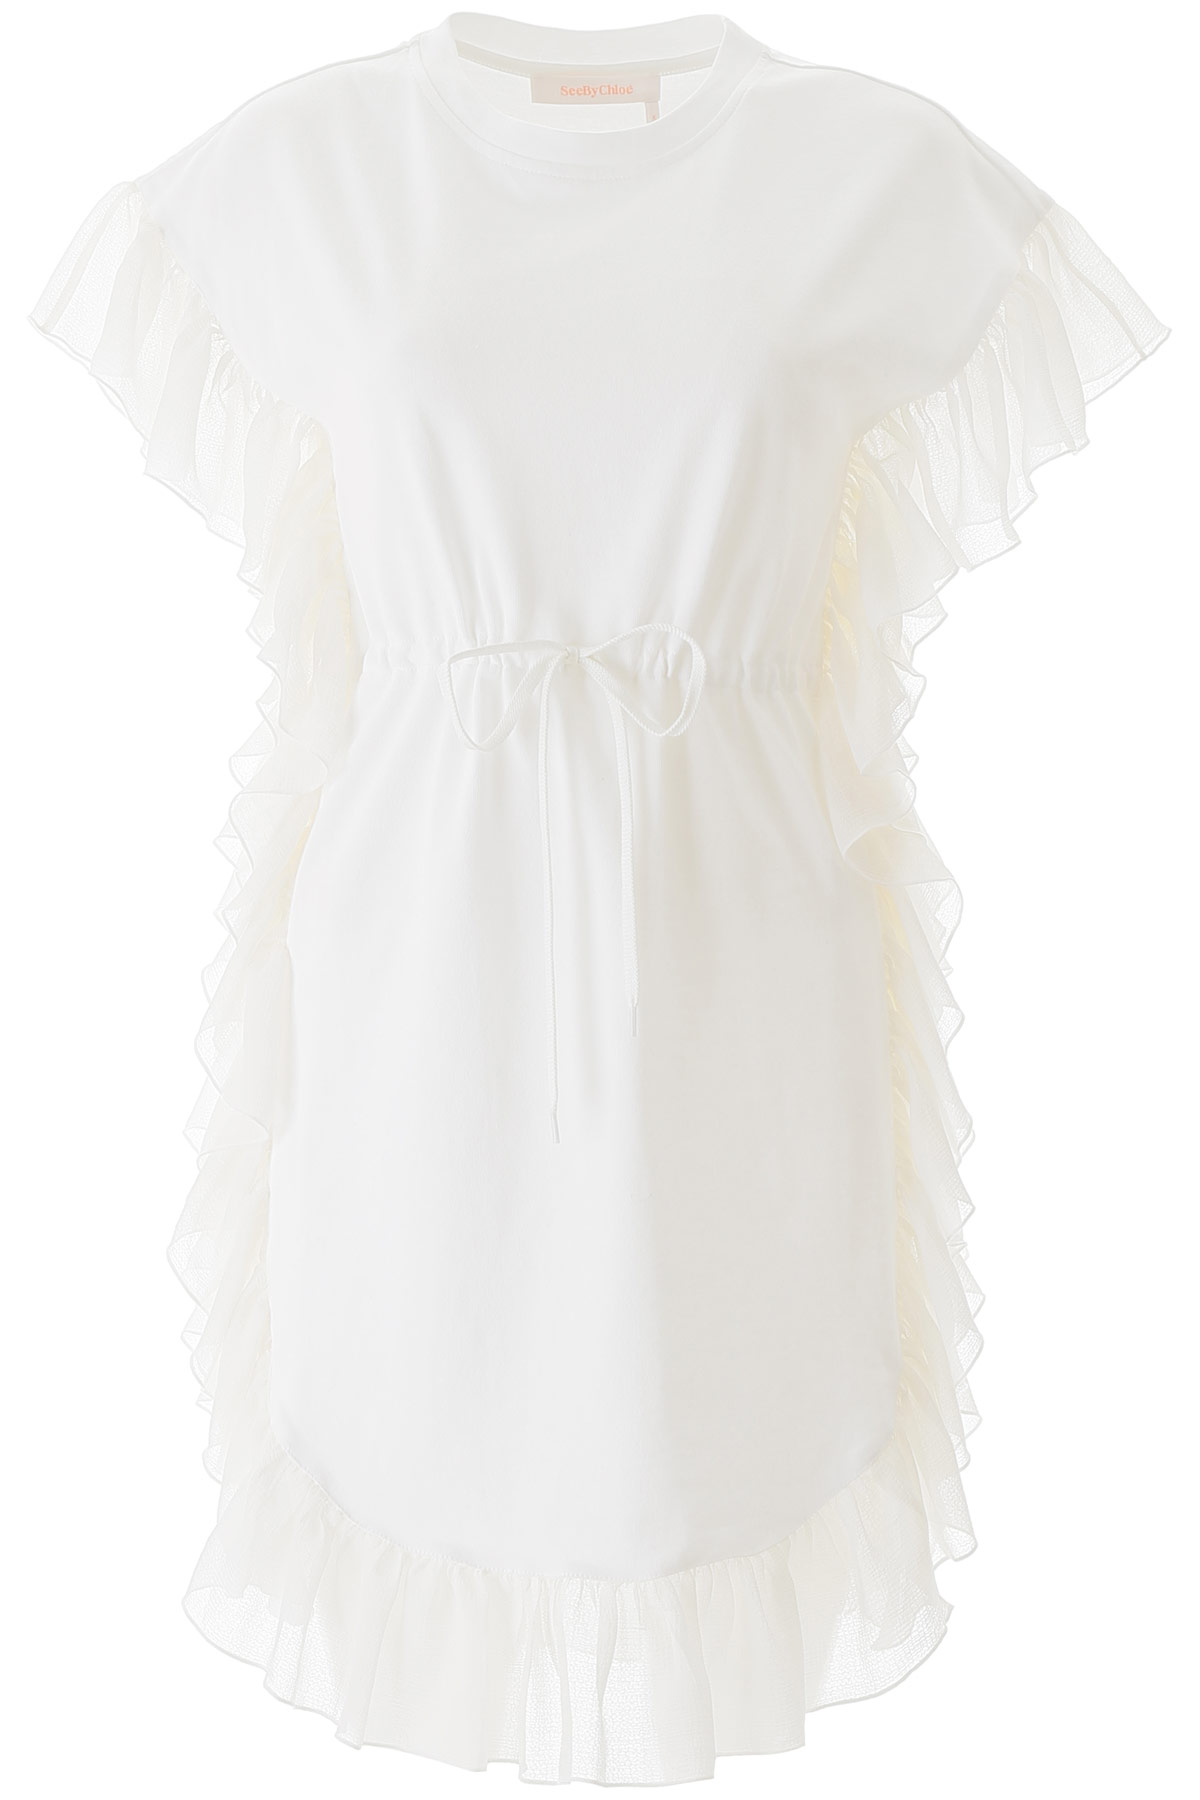 SEE BY CHLOE RUFFLED DRESS M White Cotton